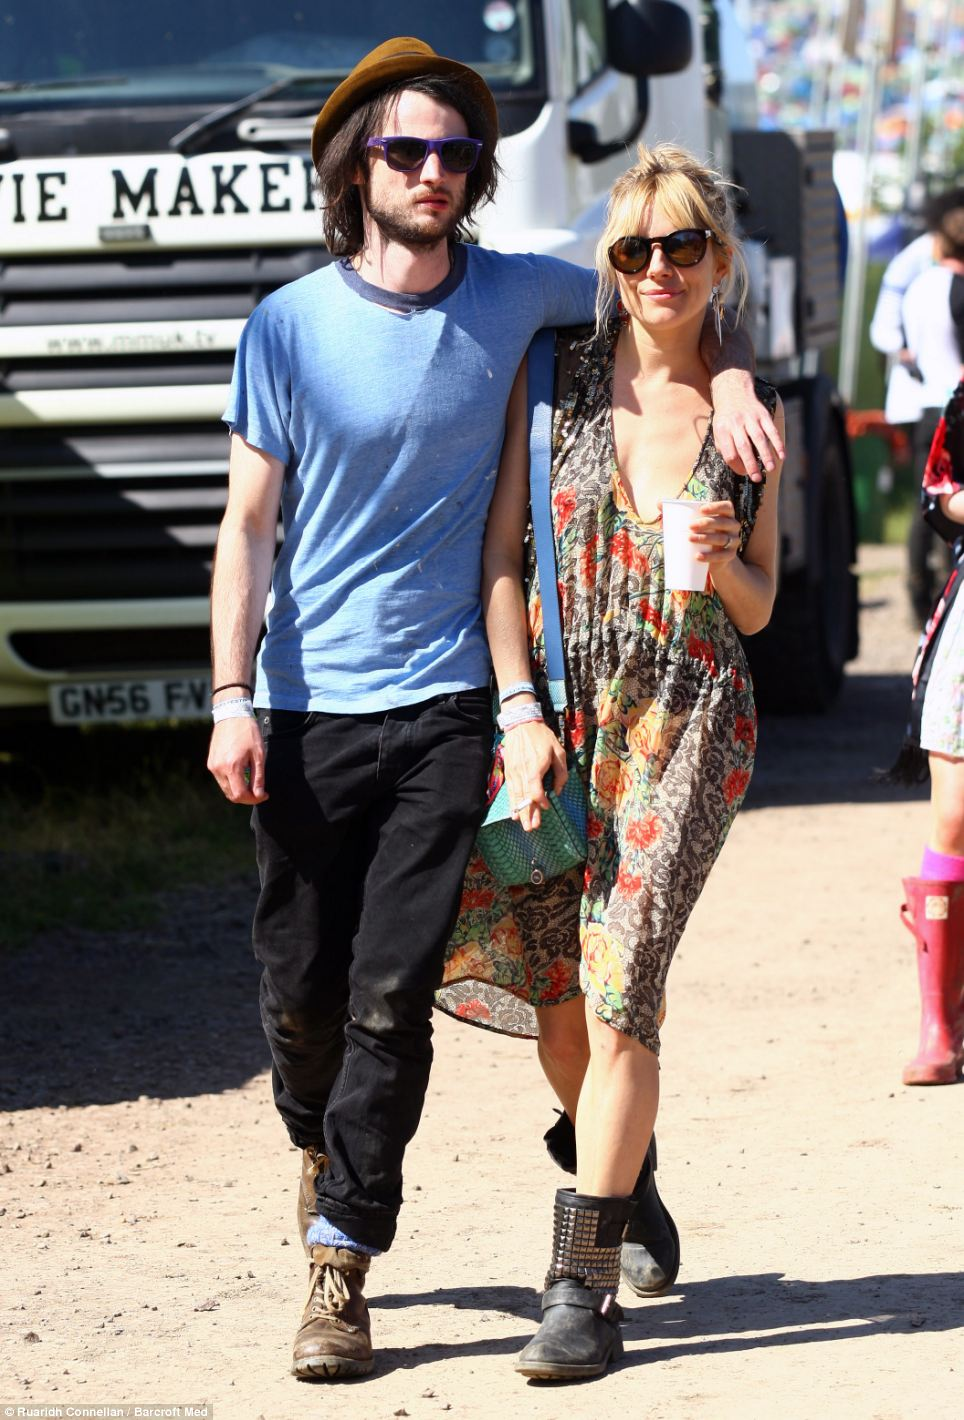 New parents Sienna Miller and Tom Sturridge wore sturdy boots to the second day of Glastonbury in case the ground was muddy